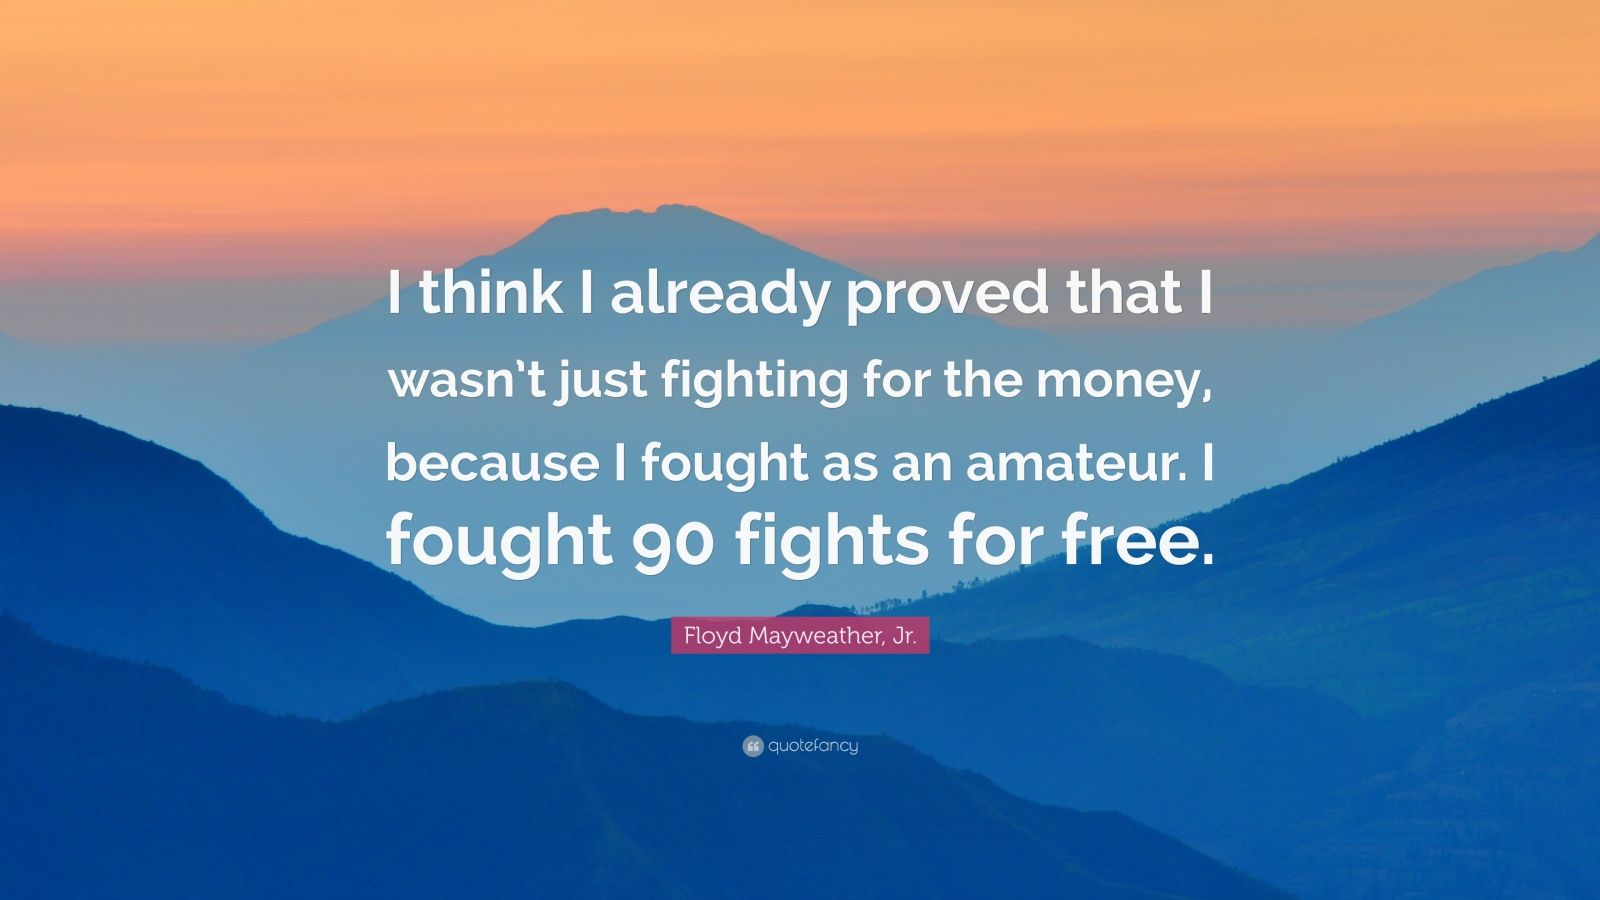 """Floyd Mayweather, Jr. Quote: """"I think I already proved that I wasn't just fighting for the money, because I fought as an amateur. I fought 90 fights for free."""""""